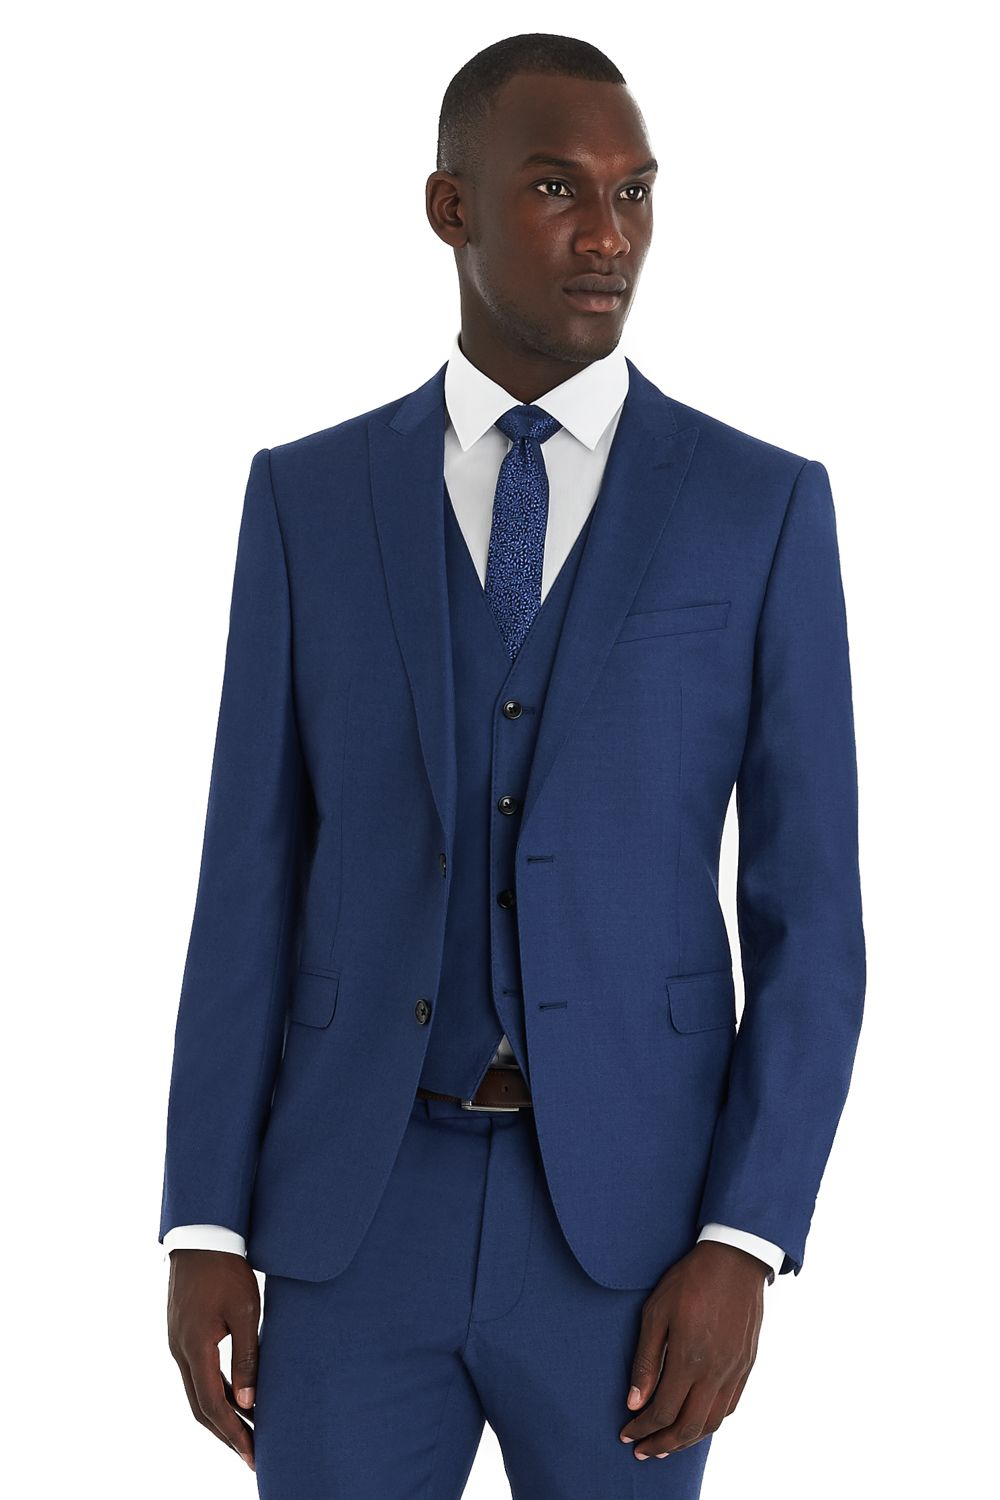 c889c6d2b6b30f French Connection Slim Fit Bright Blue Milled Suit | A Style without ...